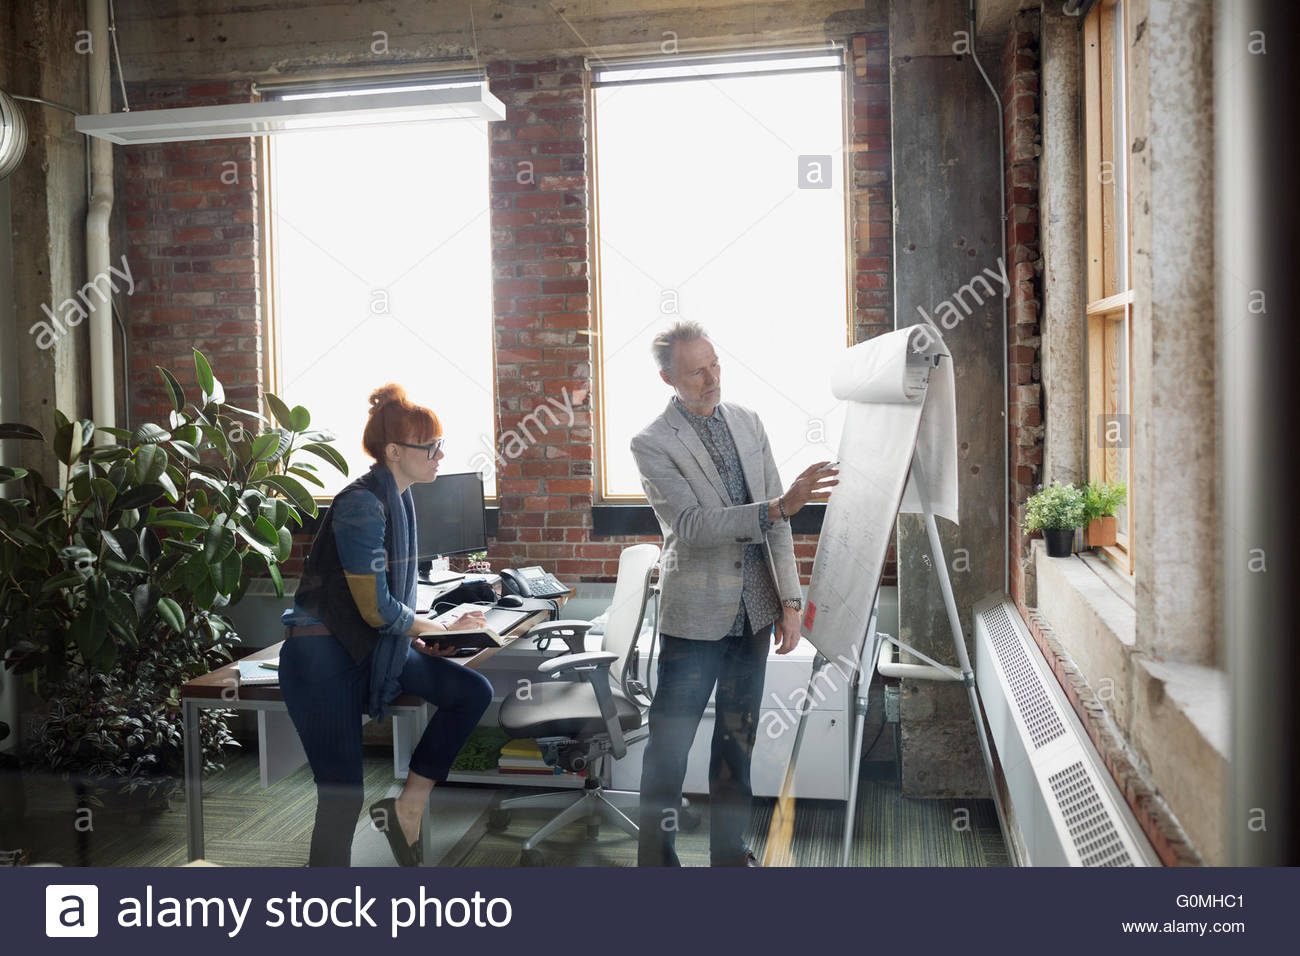 Businessman explaining flipchart to coworker in office - Stock Image